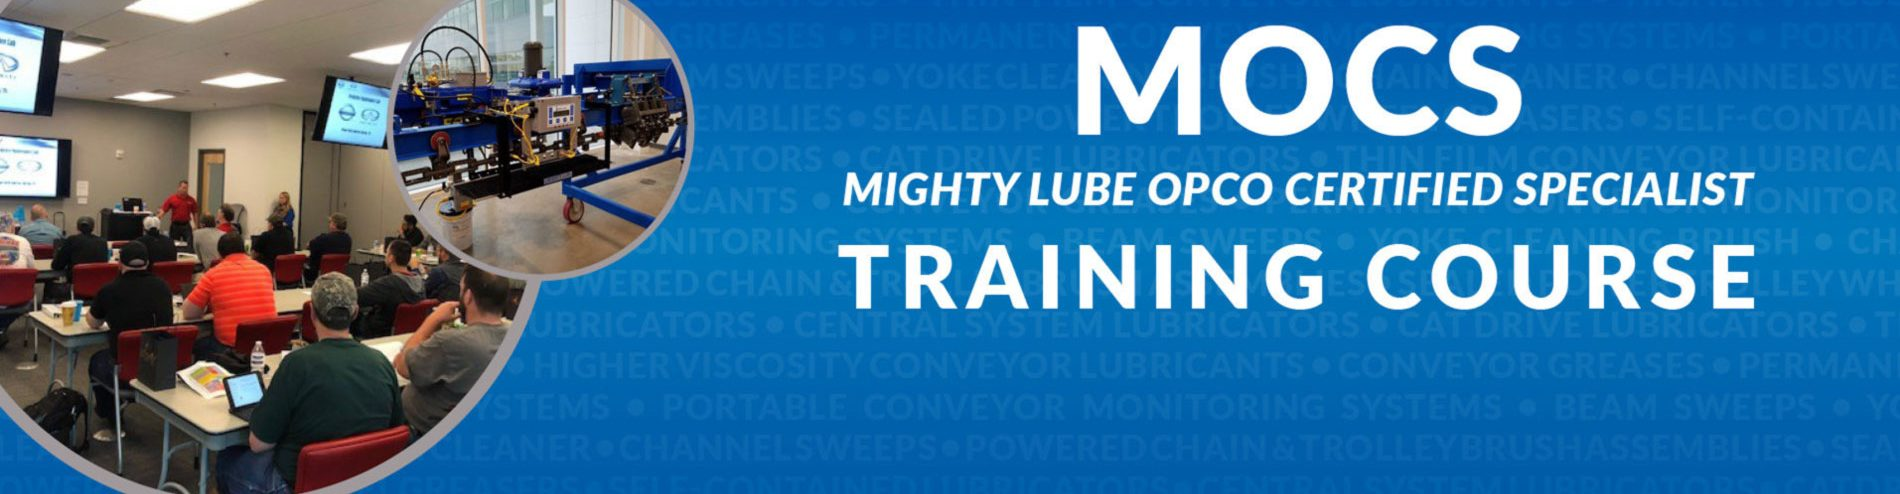 MOCS Mighty Lube OPCO Certified Specialist Training Course